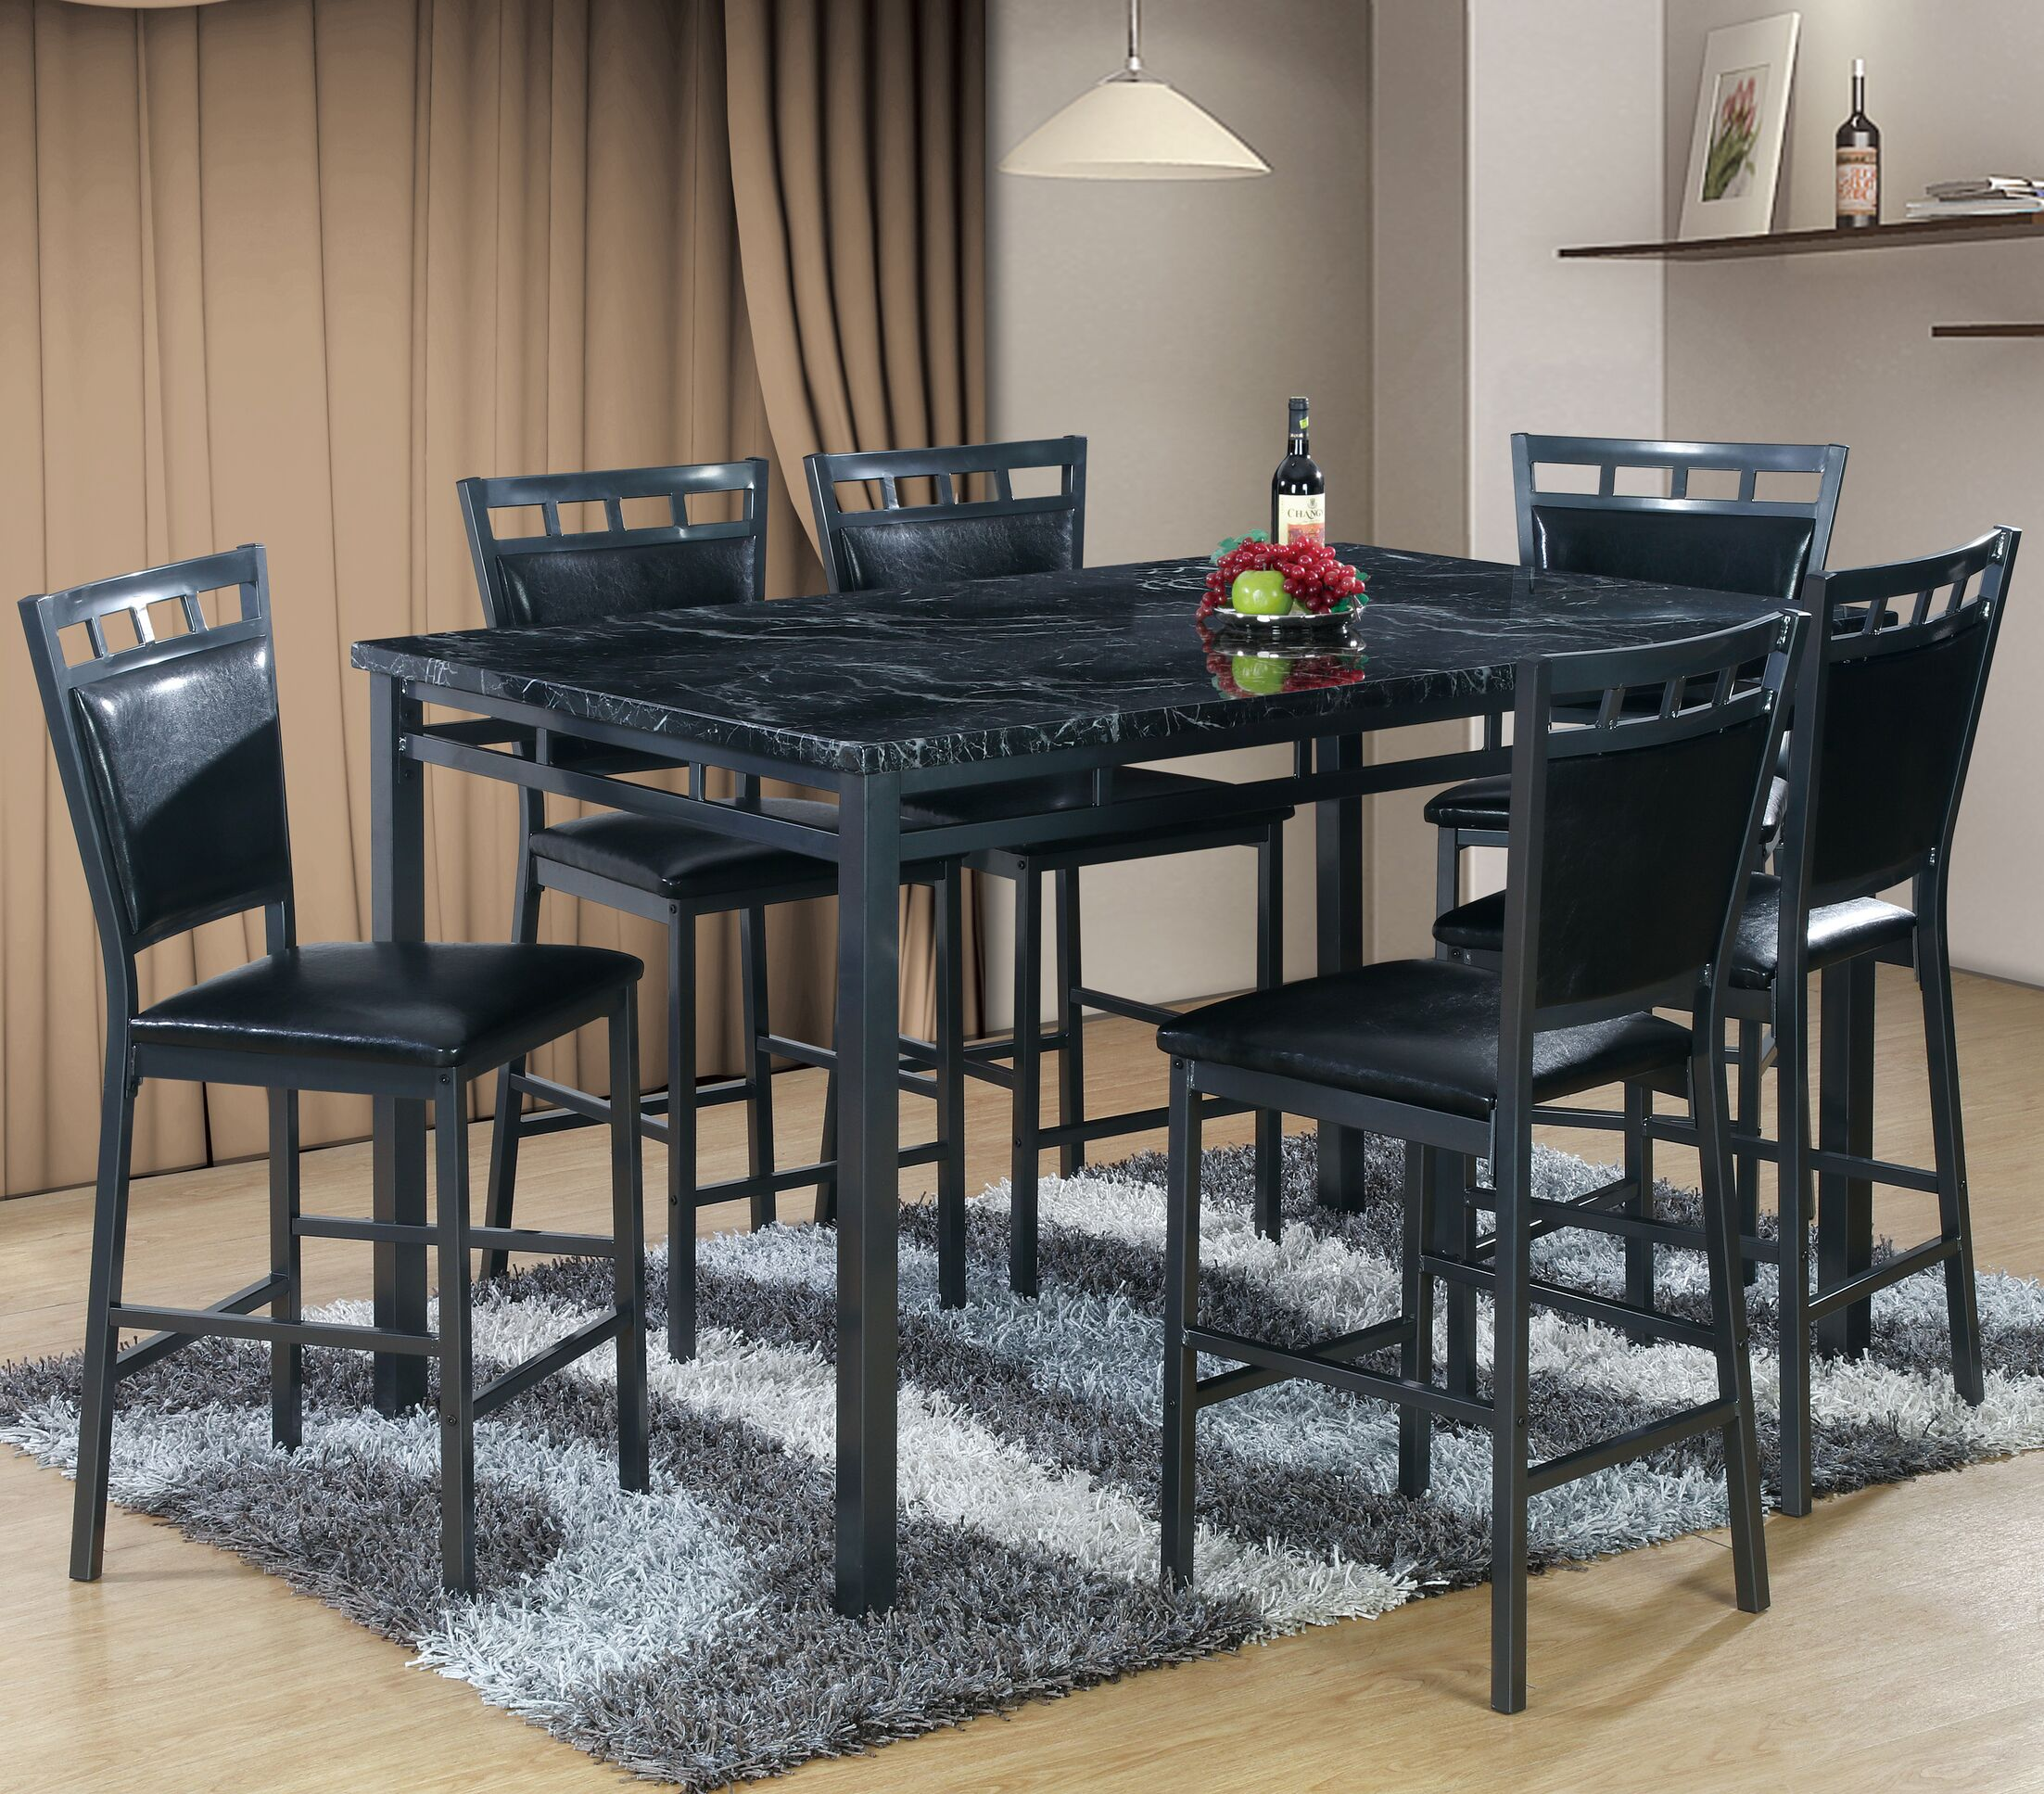 Dining Table Sets Pickerington 7 Piece Counter Height Dining Table Set